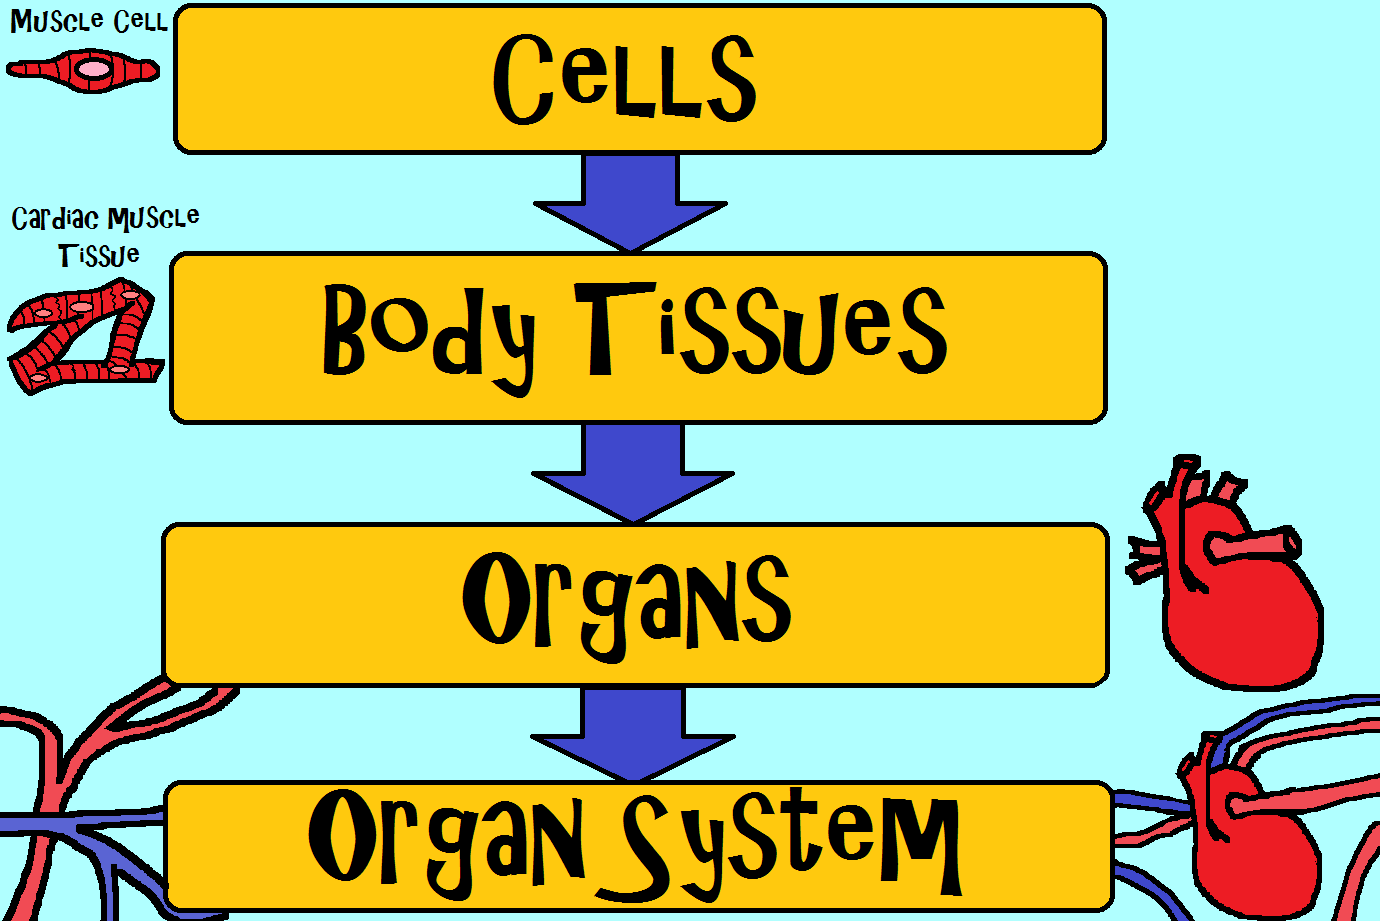 Cells Make Up Body Tissues Which Make Up Organs Which Make